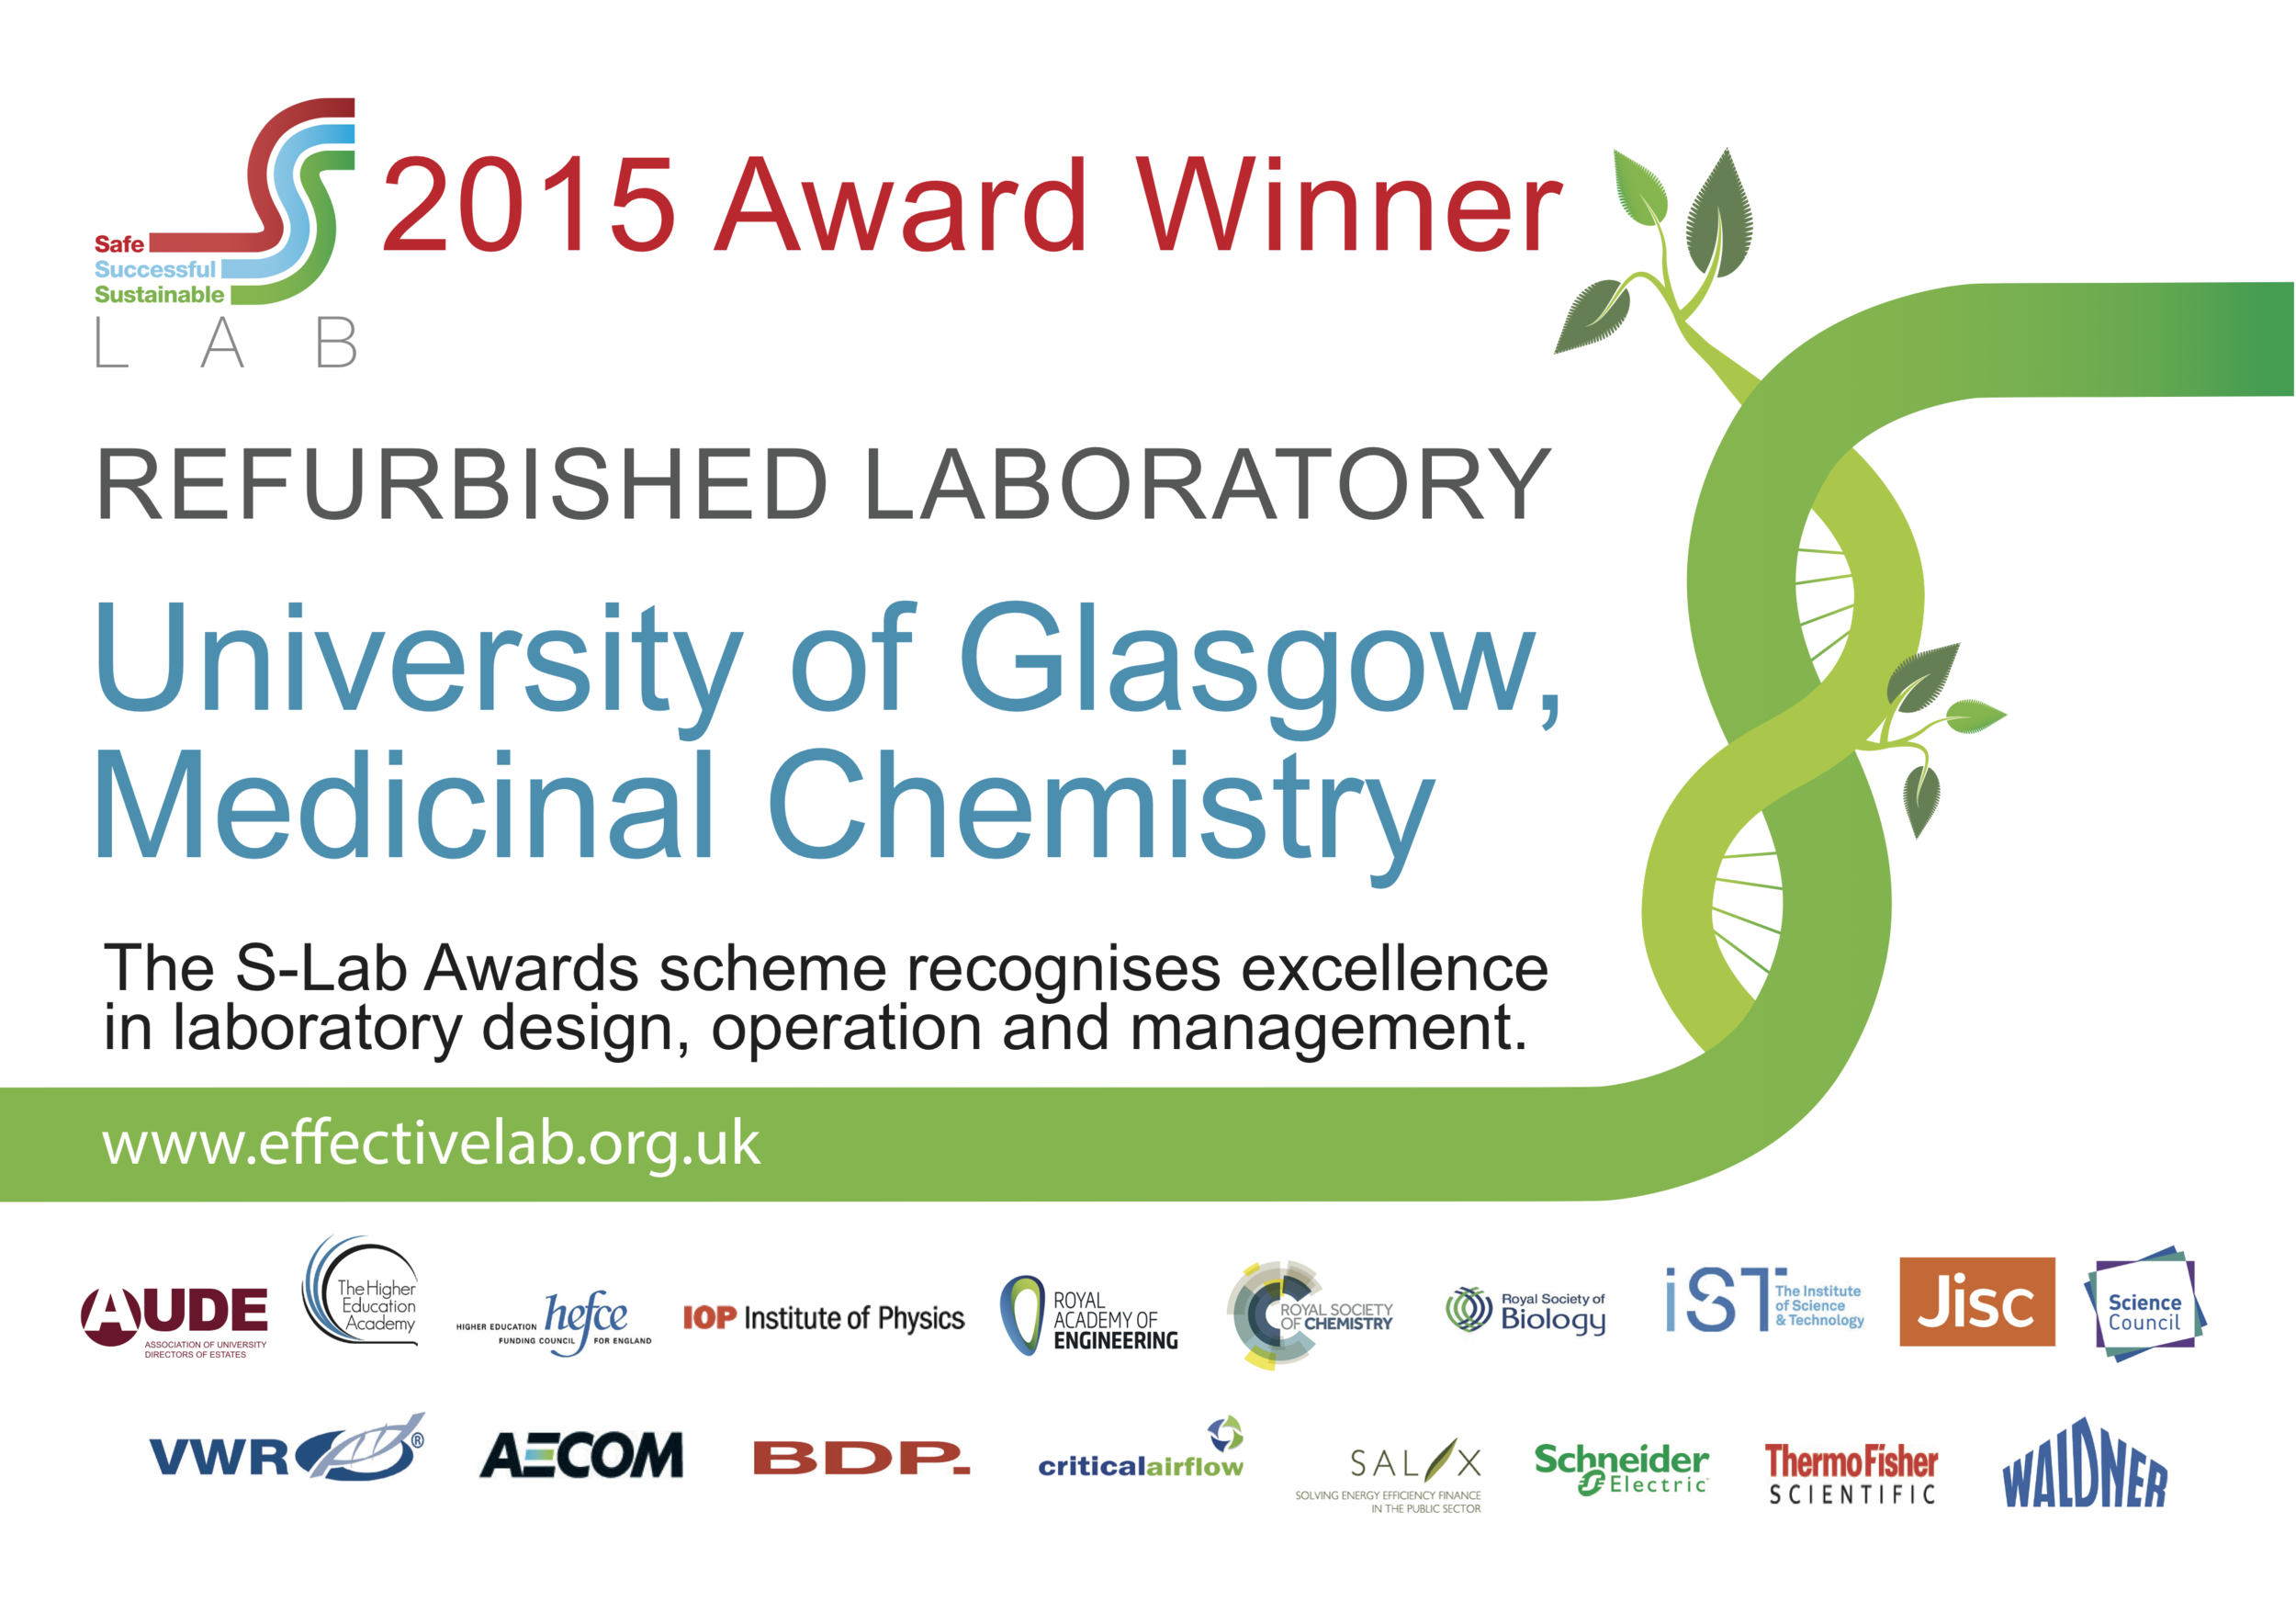 S-LAB certificate_REFURBISHED LAB UNIVERSITY OF GLASGOW copy 2.png